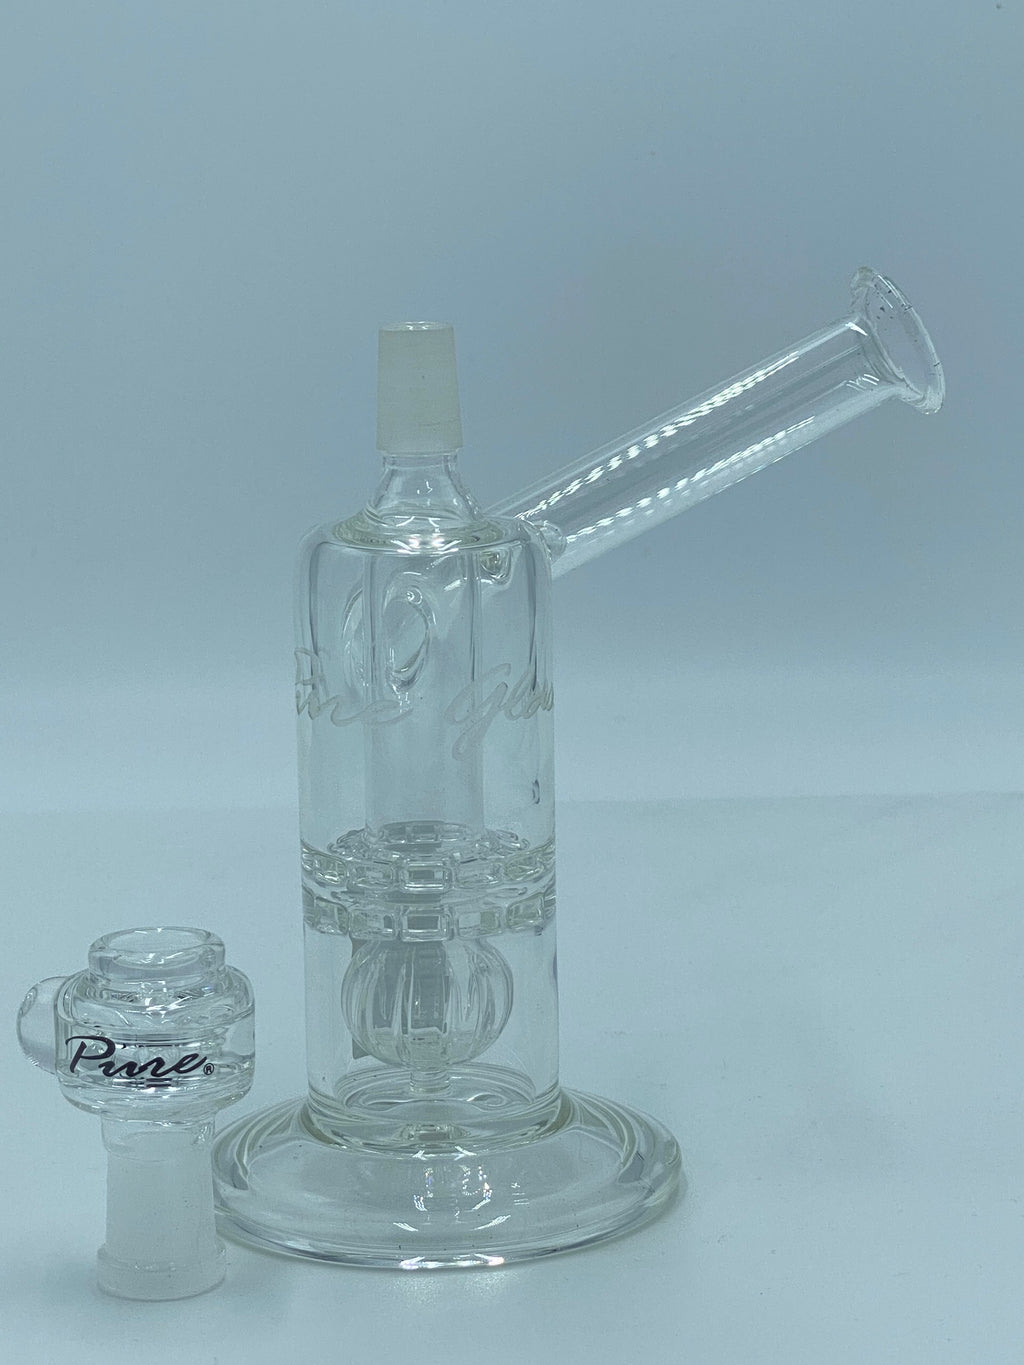 PURE GLASS TORUS SIDE CAR - Smoke Country - Land of the artistic glass blown bongs